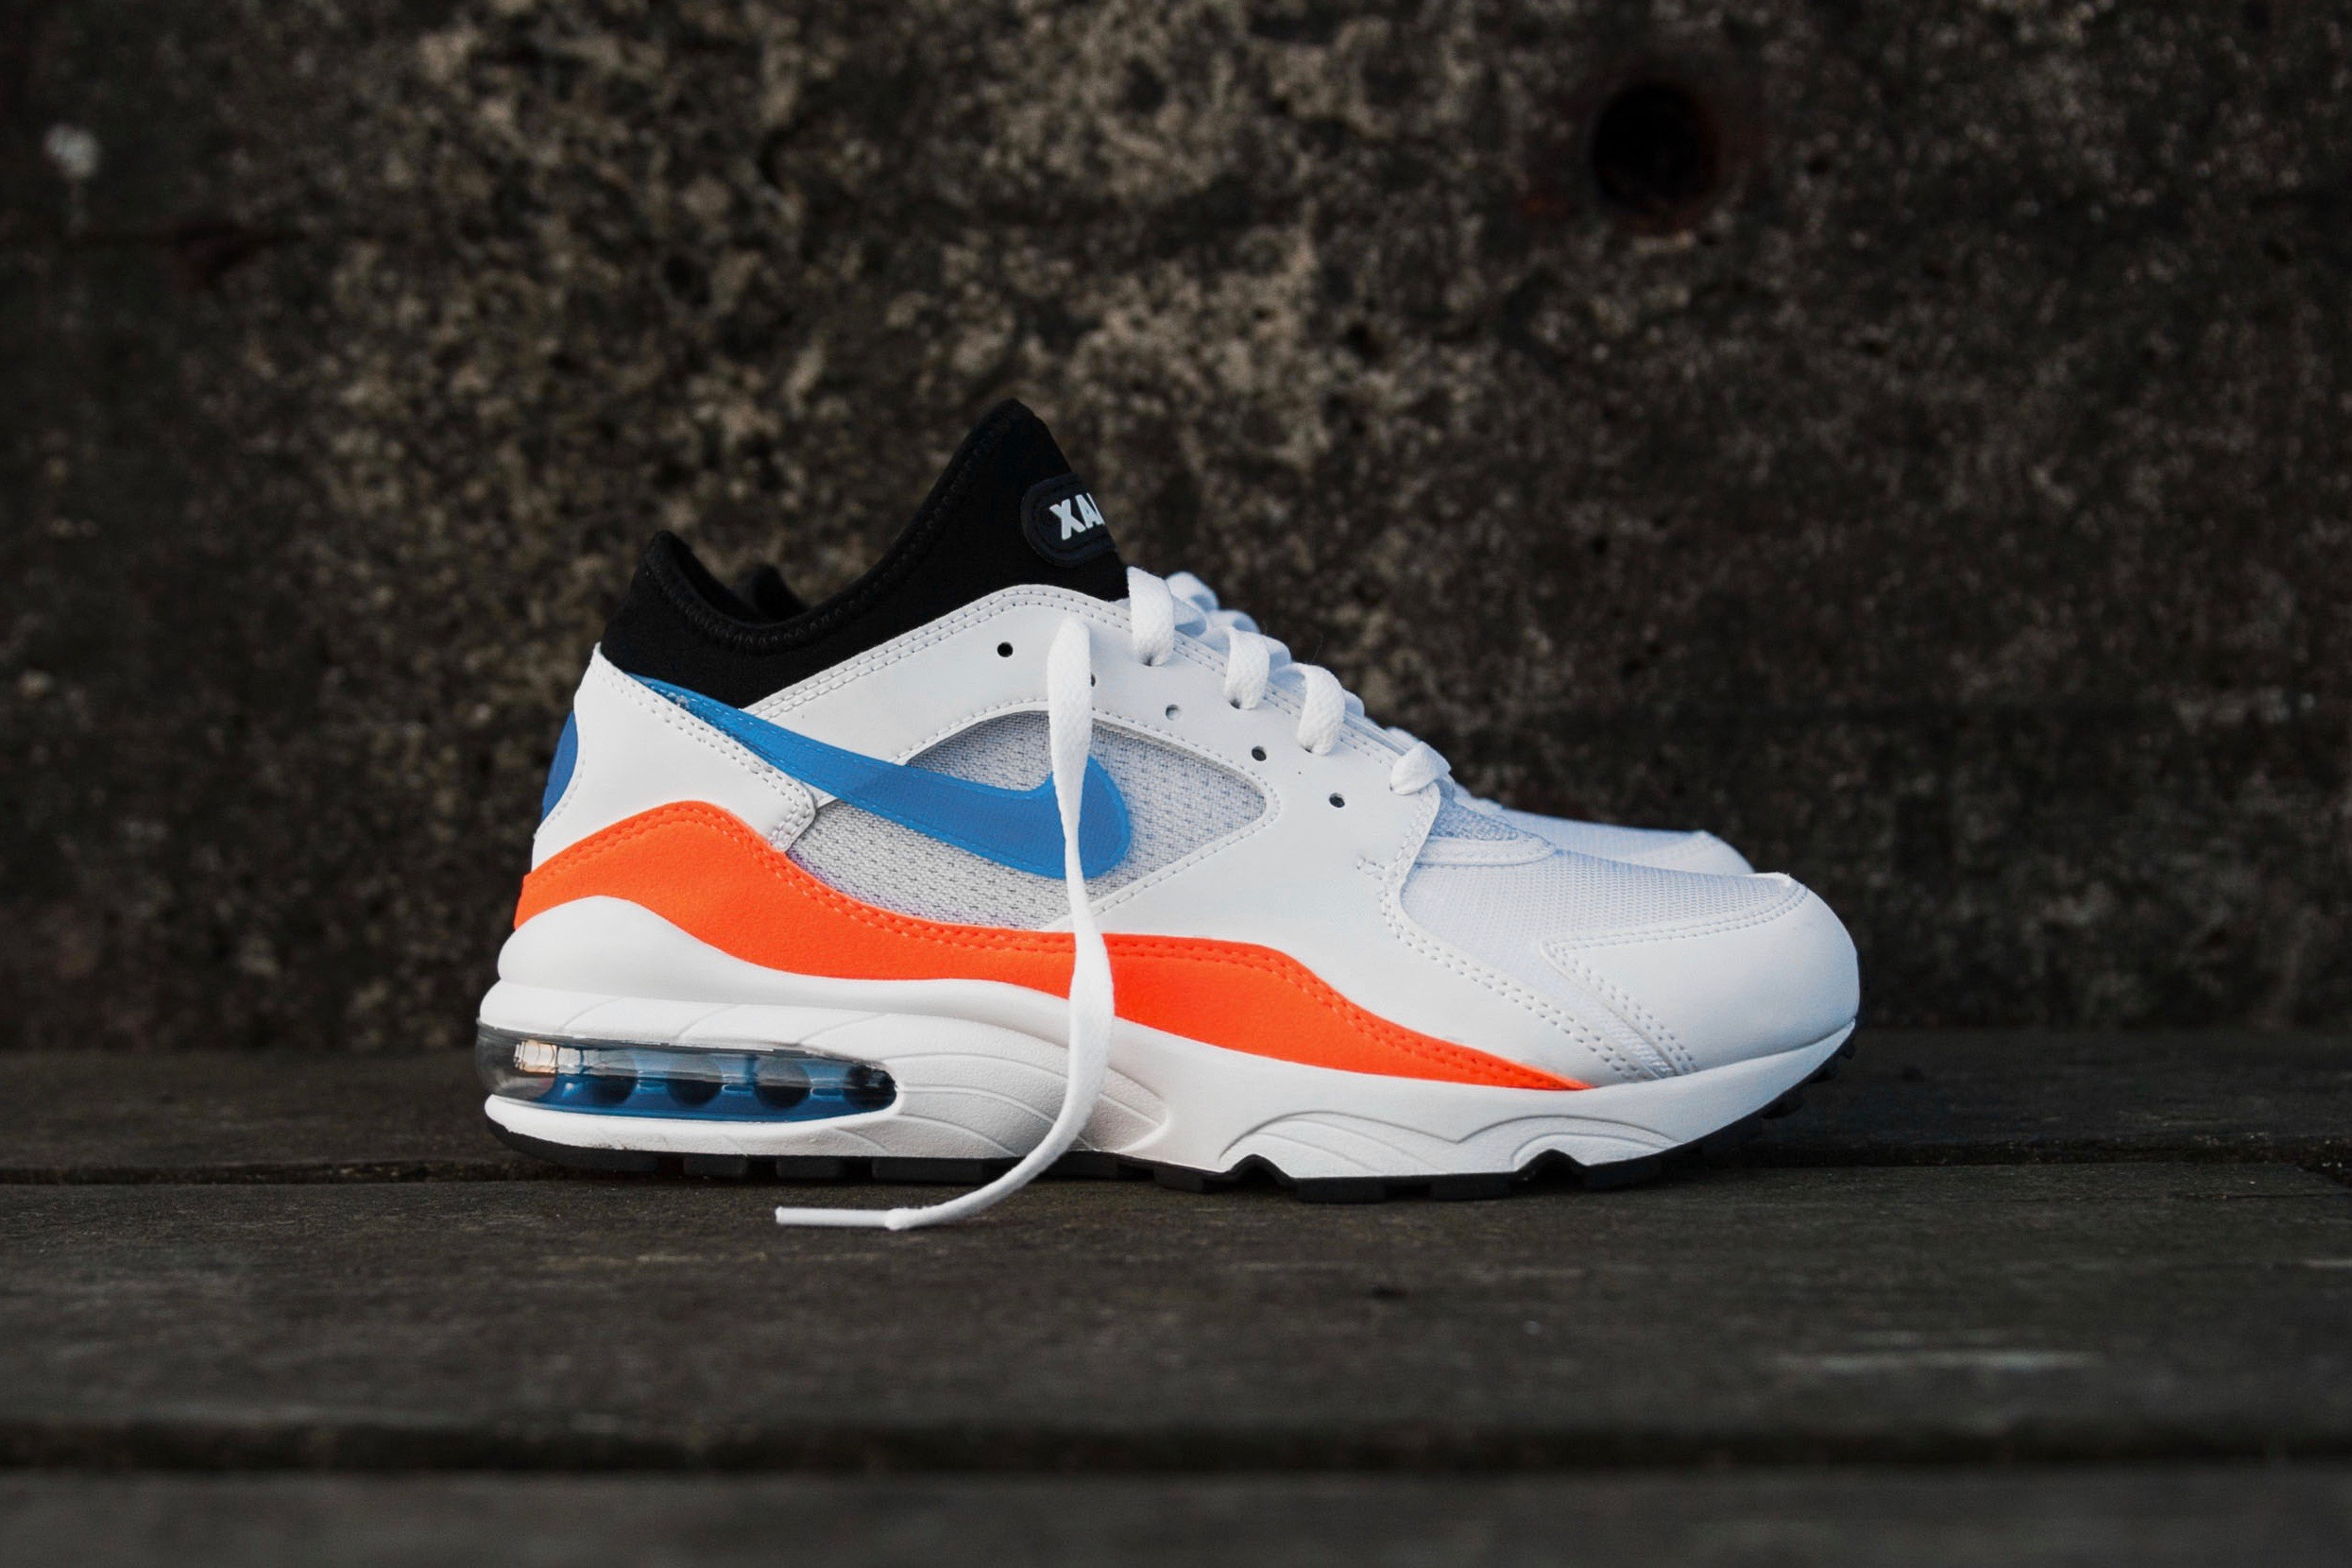 59892b6a9cc2 Nike Air Max 93 – White   Total Orange   Black  Blue Nebula – STASP